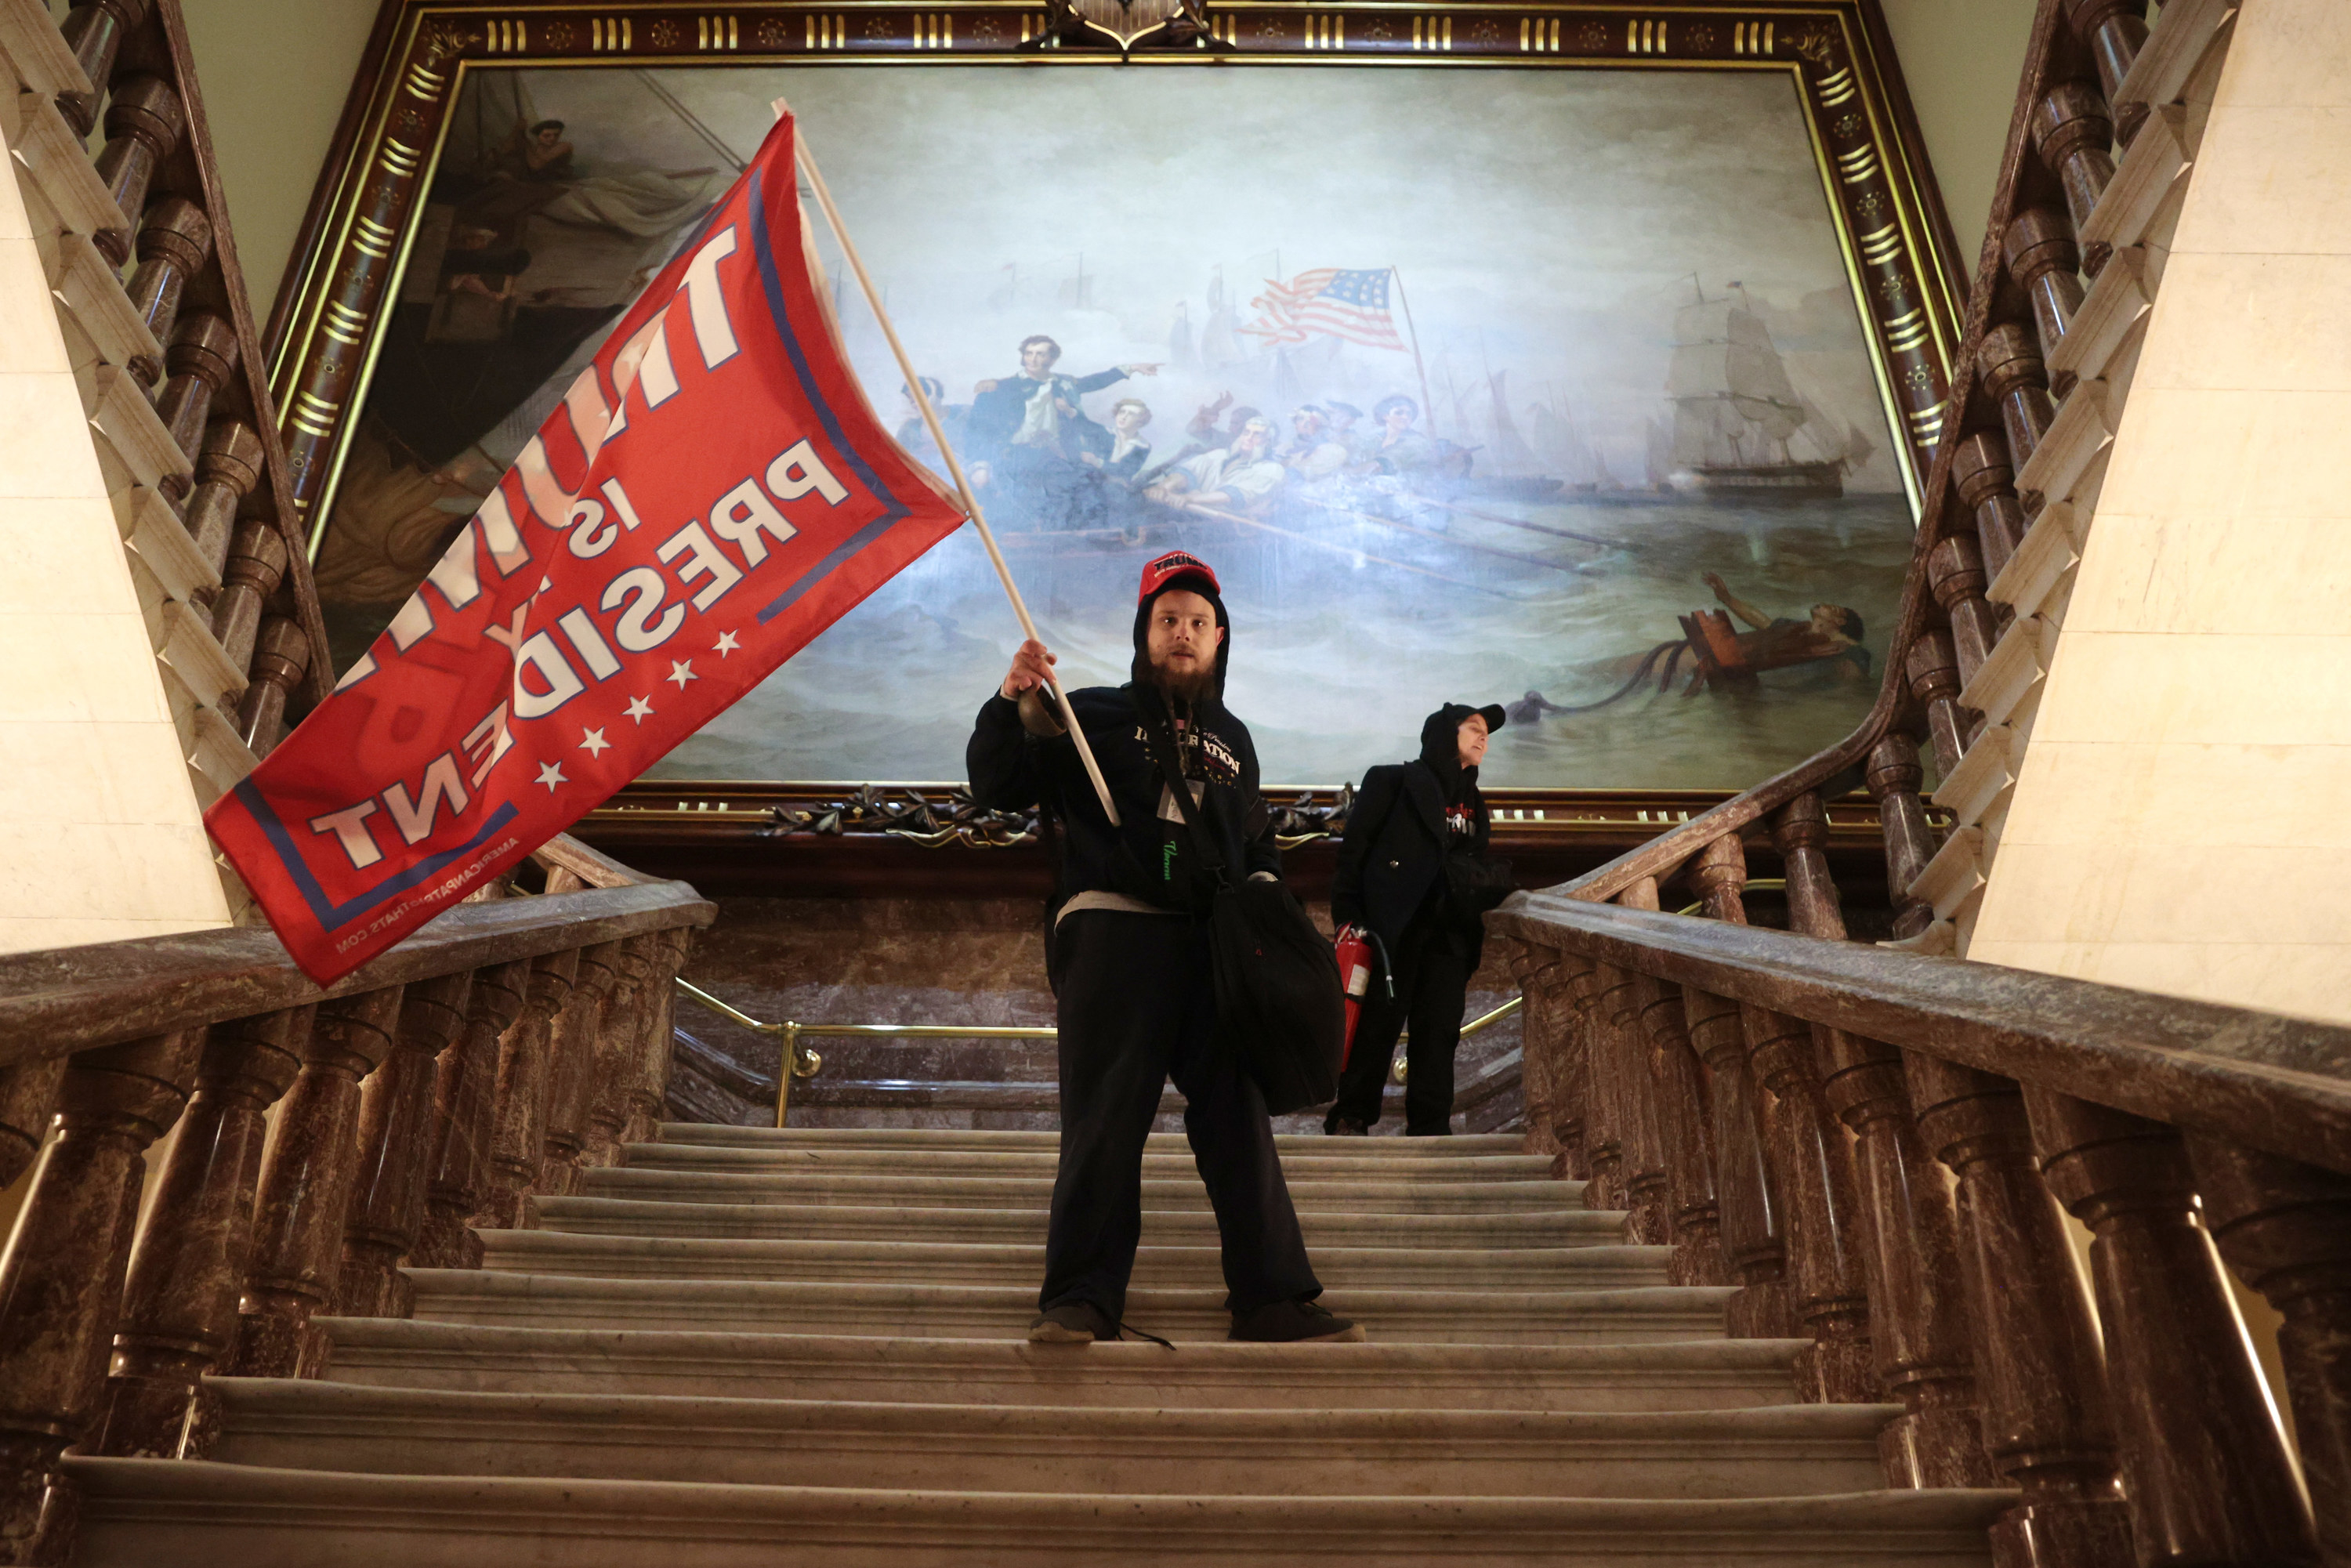 A Trump supporter waving a Trump flag in the Capitol